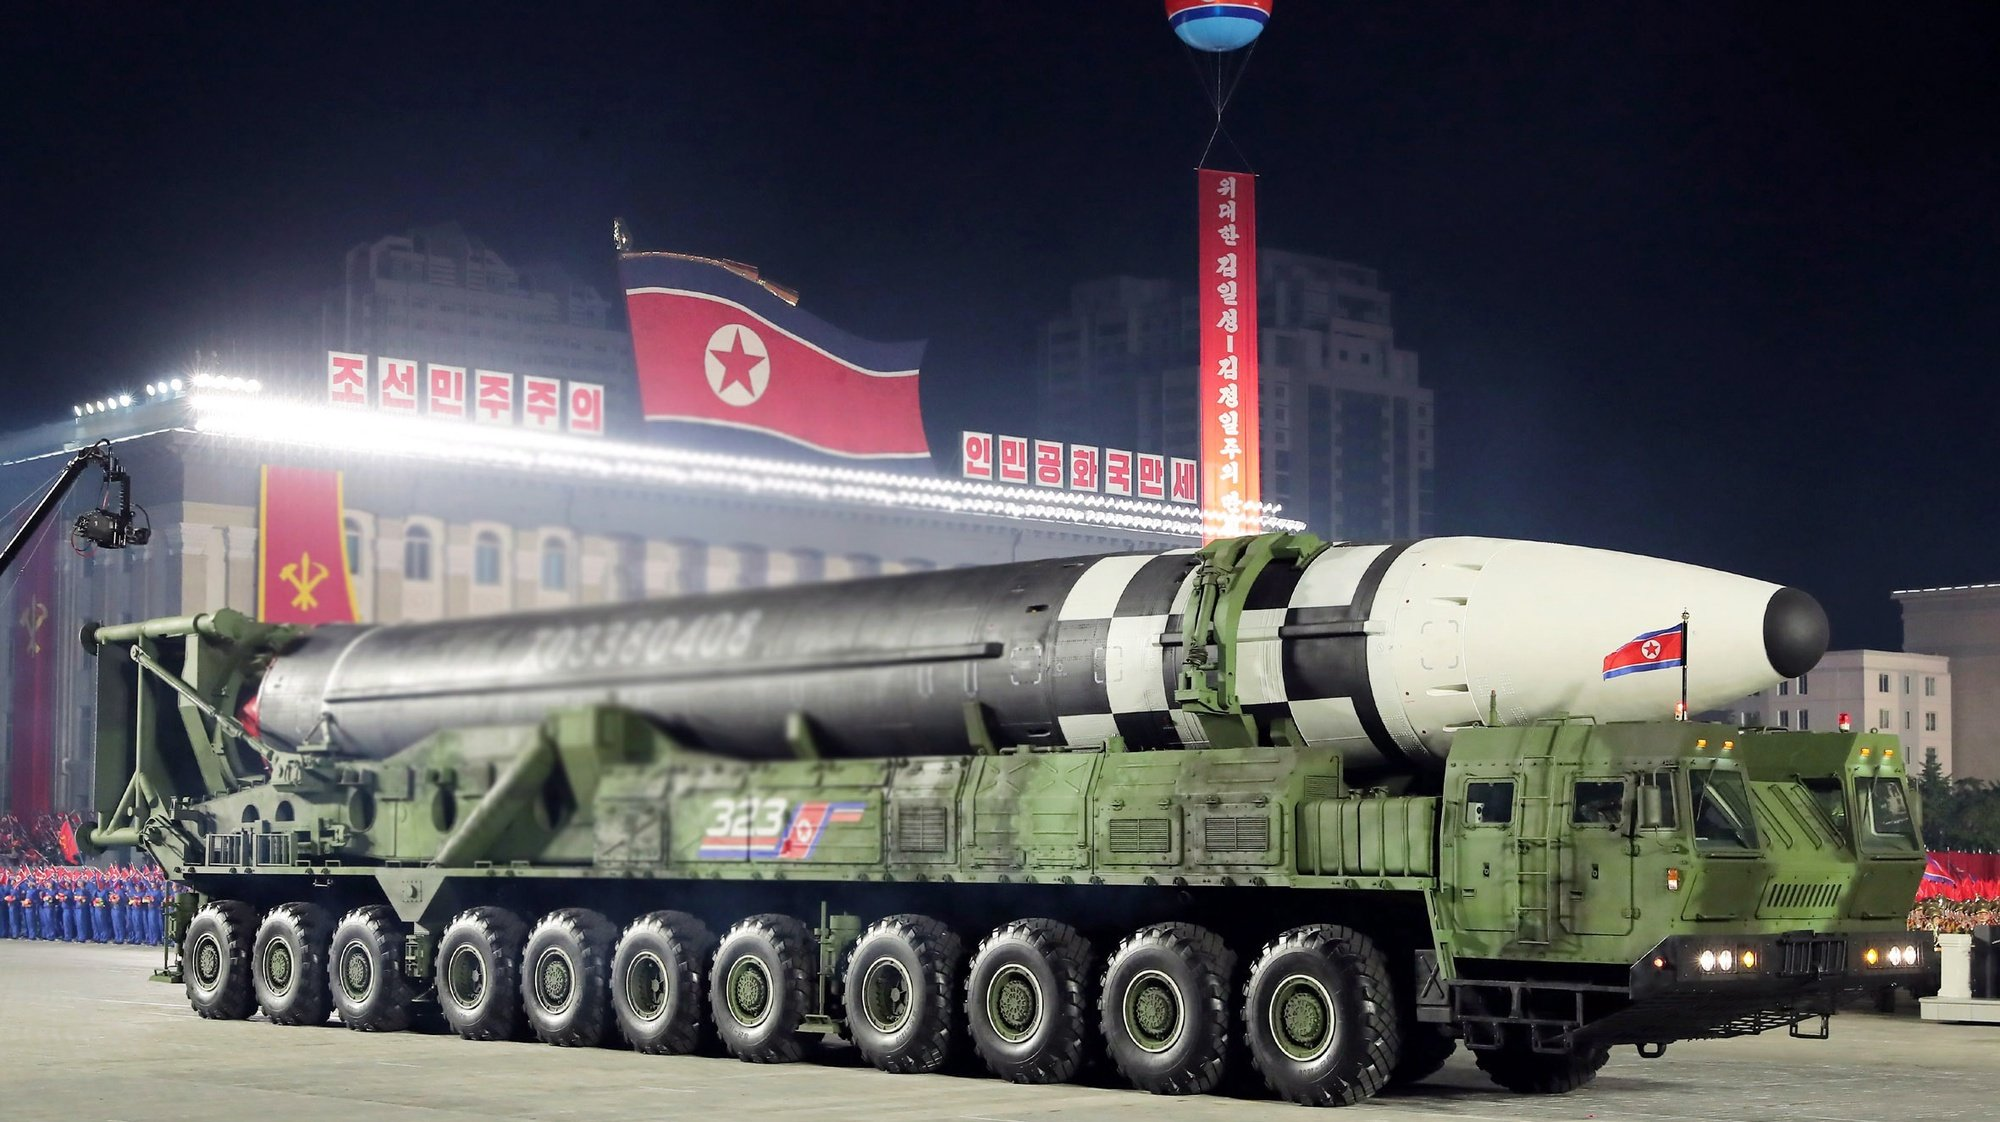 epa08737328 A photo released by the official North Korean Central News Agency (KCNA) shows North Korea's new intercontinental ballistic missile (ICBM) during a military parade at the Kim Il Sung Square during celebrations of the 75th anniversary of the founding of the Workers' Party of Korea (WPK), in Pyongyang, North Korea, 10 October 2020 (issued 12 October 2020).  EPA/KCNA   EDITORIAL USE ONLY